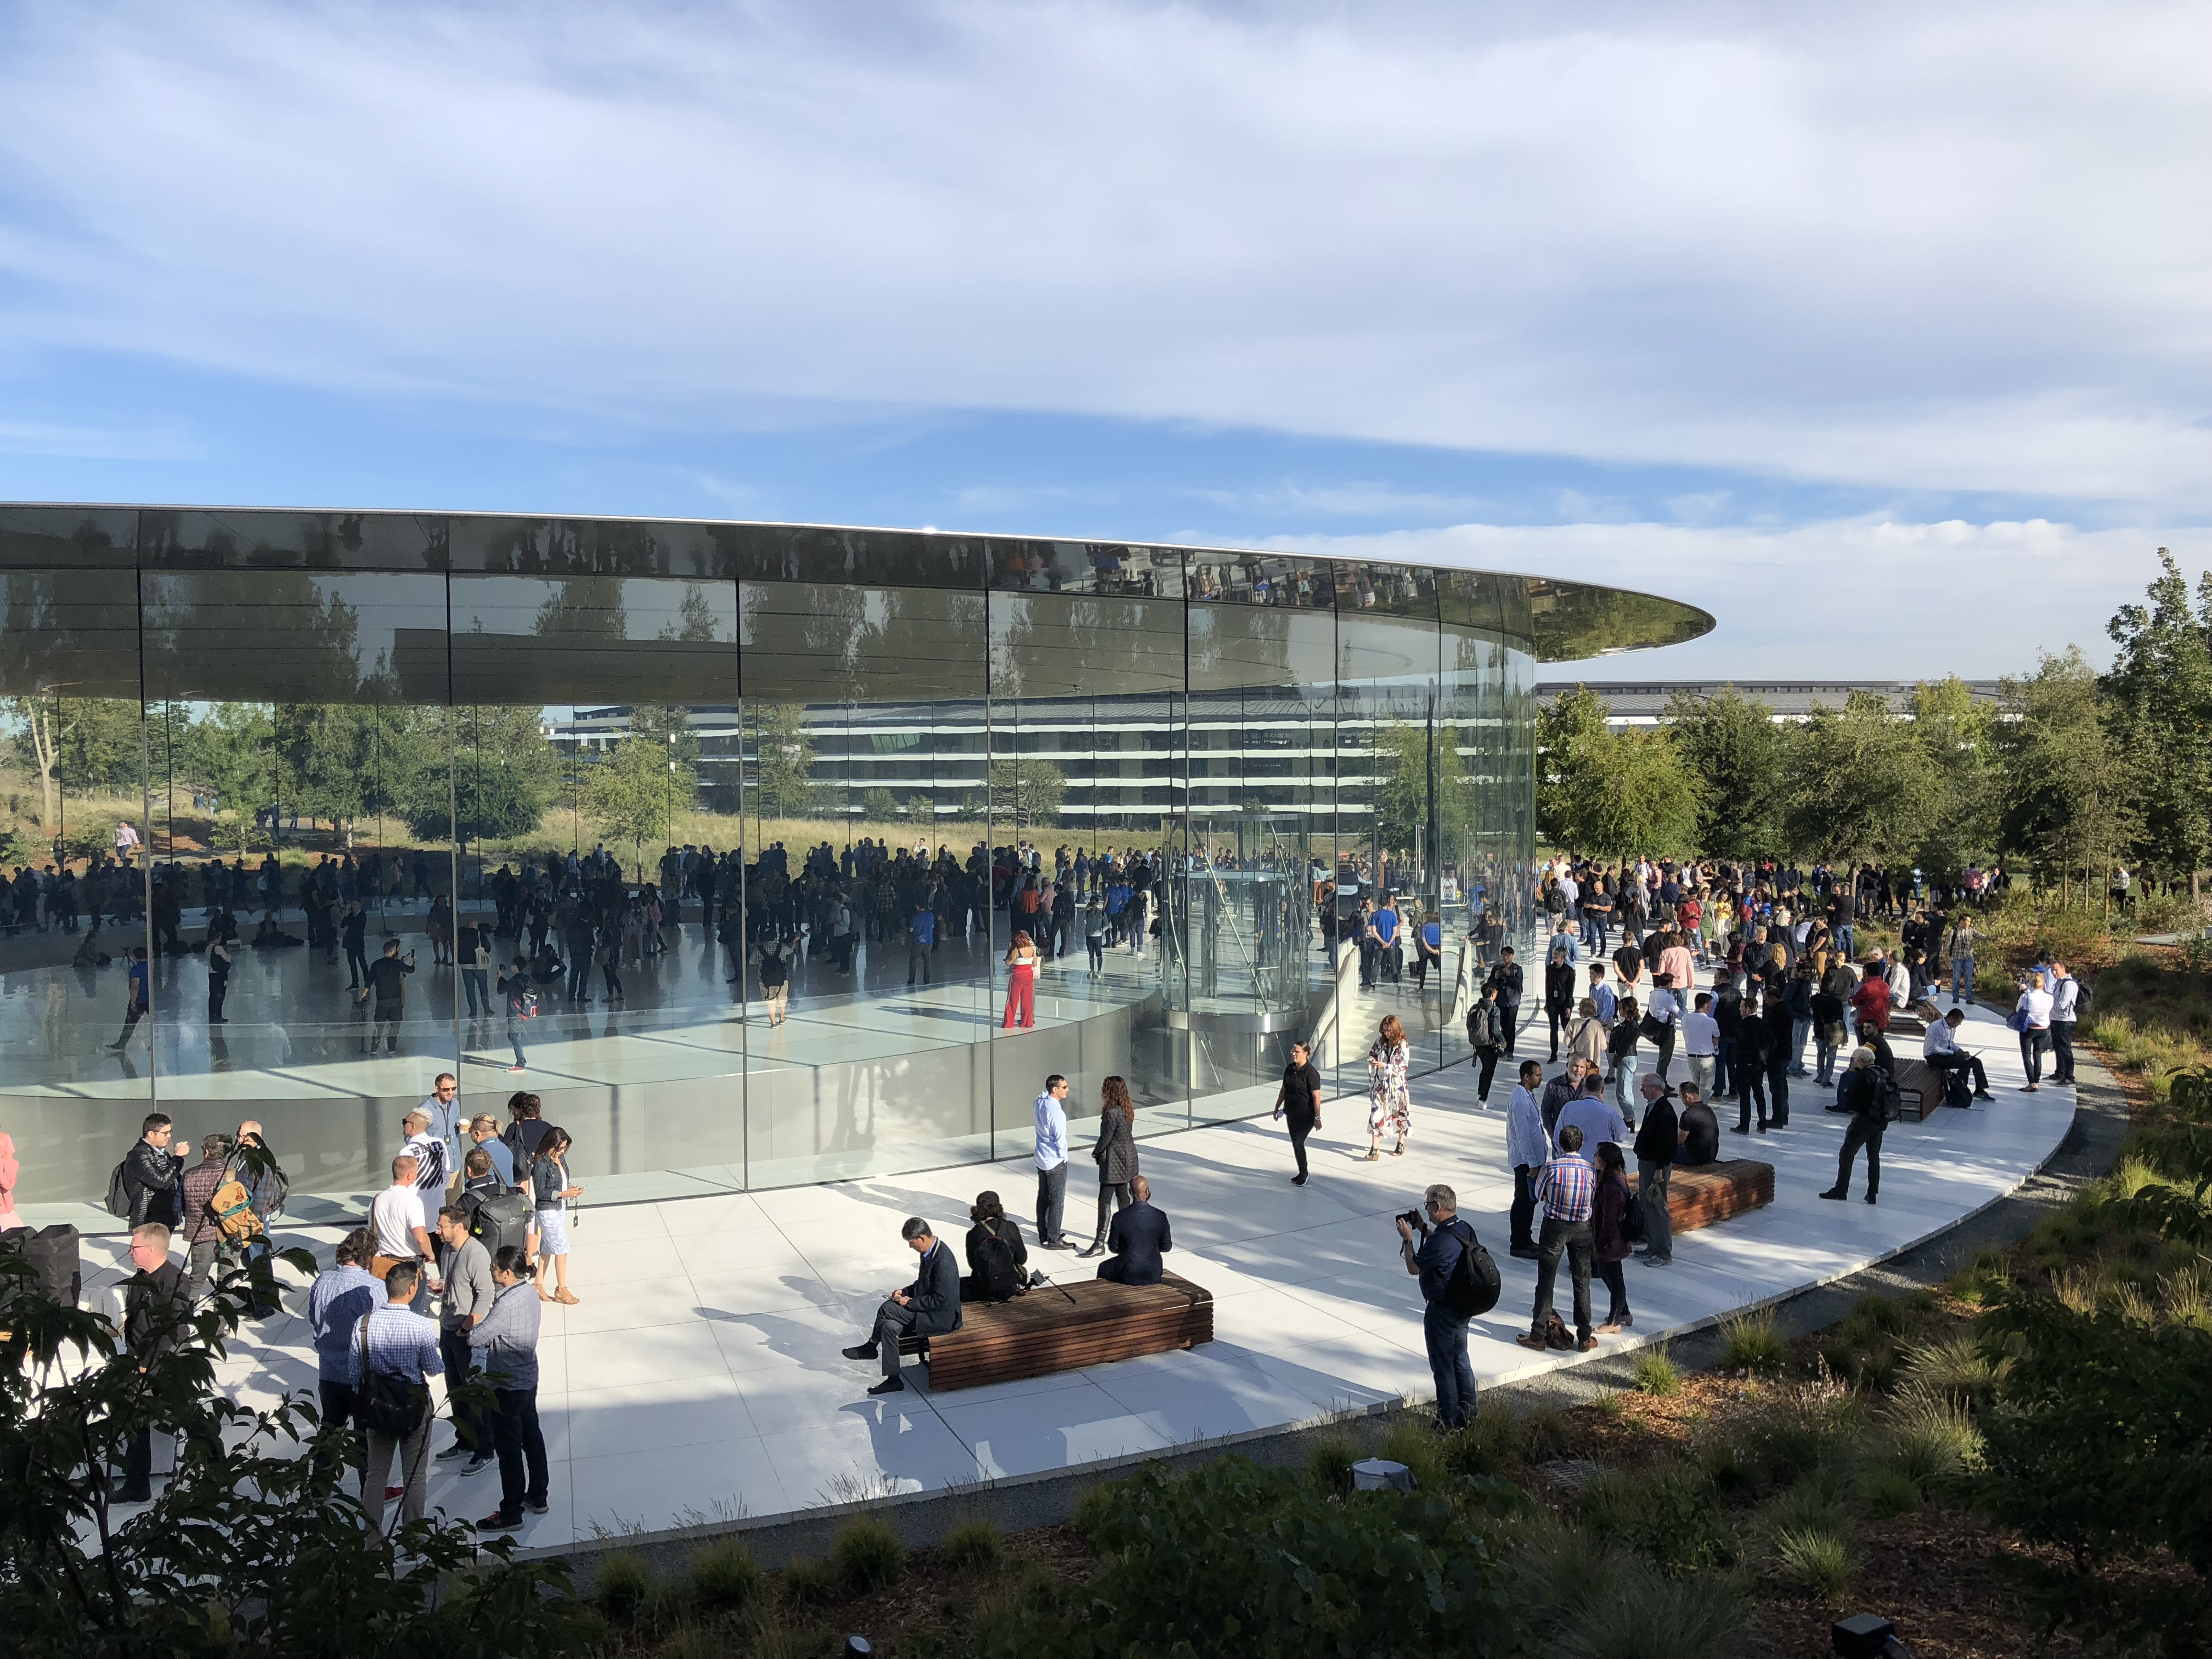 Here's what it looks like today at Apple Park's circular campus in Cupertino, California.